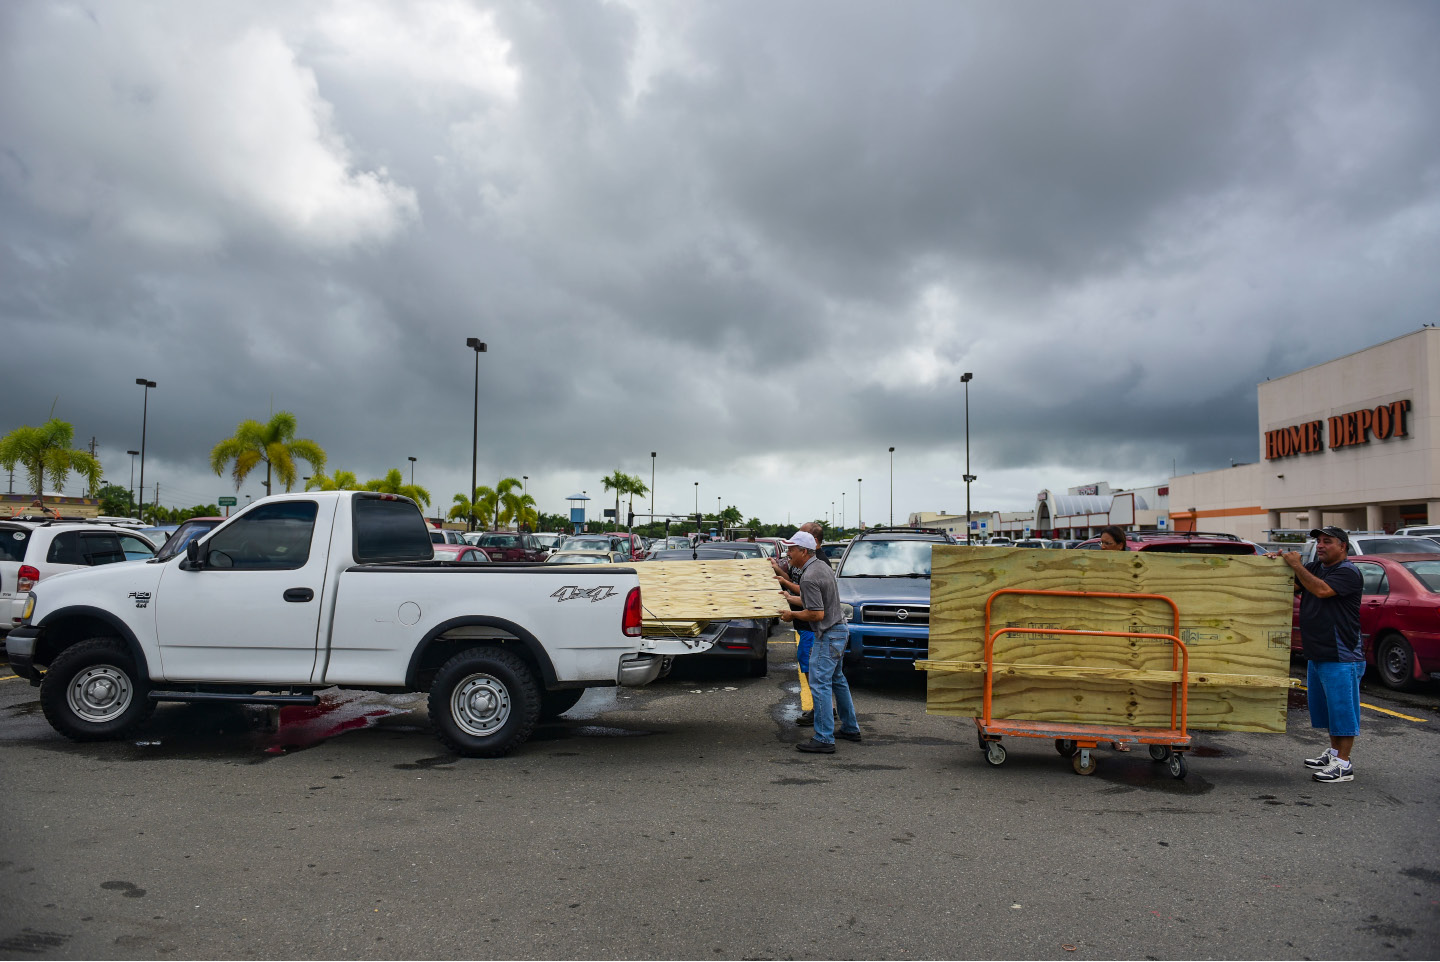 Men load recently purchased wood panels to be used for boarding up windows in preparation for Hurricane Irma, in Carolina, Puerto Rico, Tuesday, Sept. 5, 2017. Irma grew into a dangerous Category 5 storm, the most powerful seen in the Atlantic in over a decade, and roared toward islands in the northeast Caribbean Tuesday. (AP Photo/Carlos Giusti)